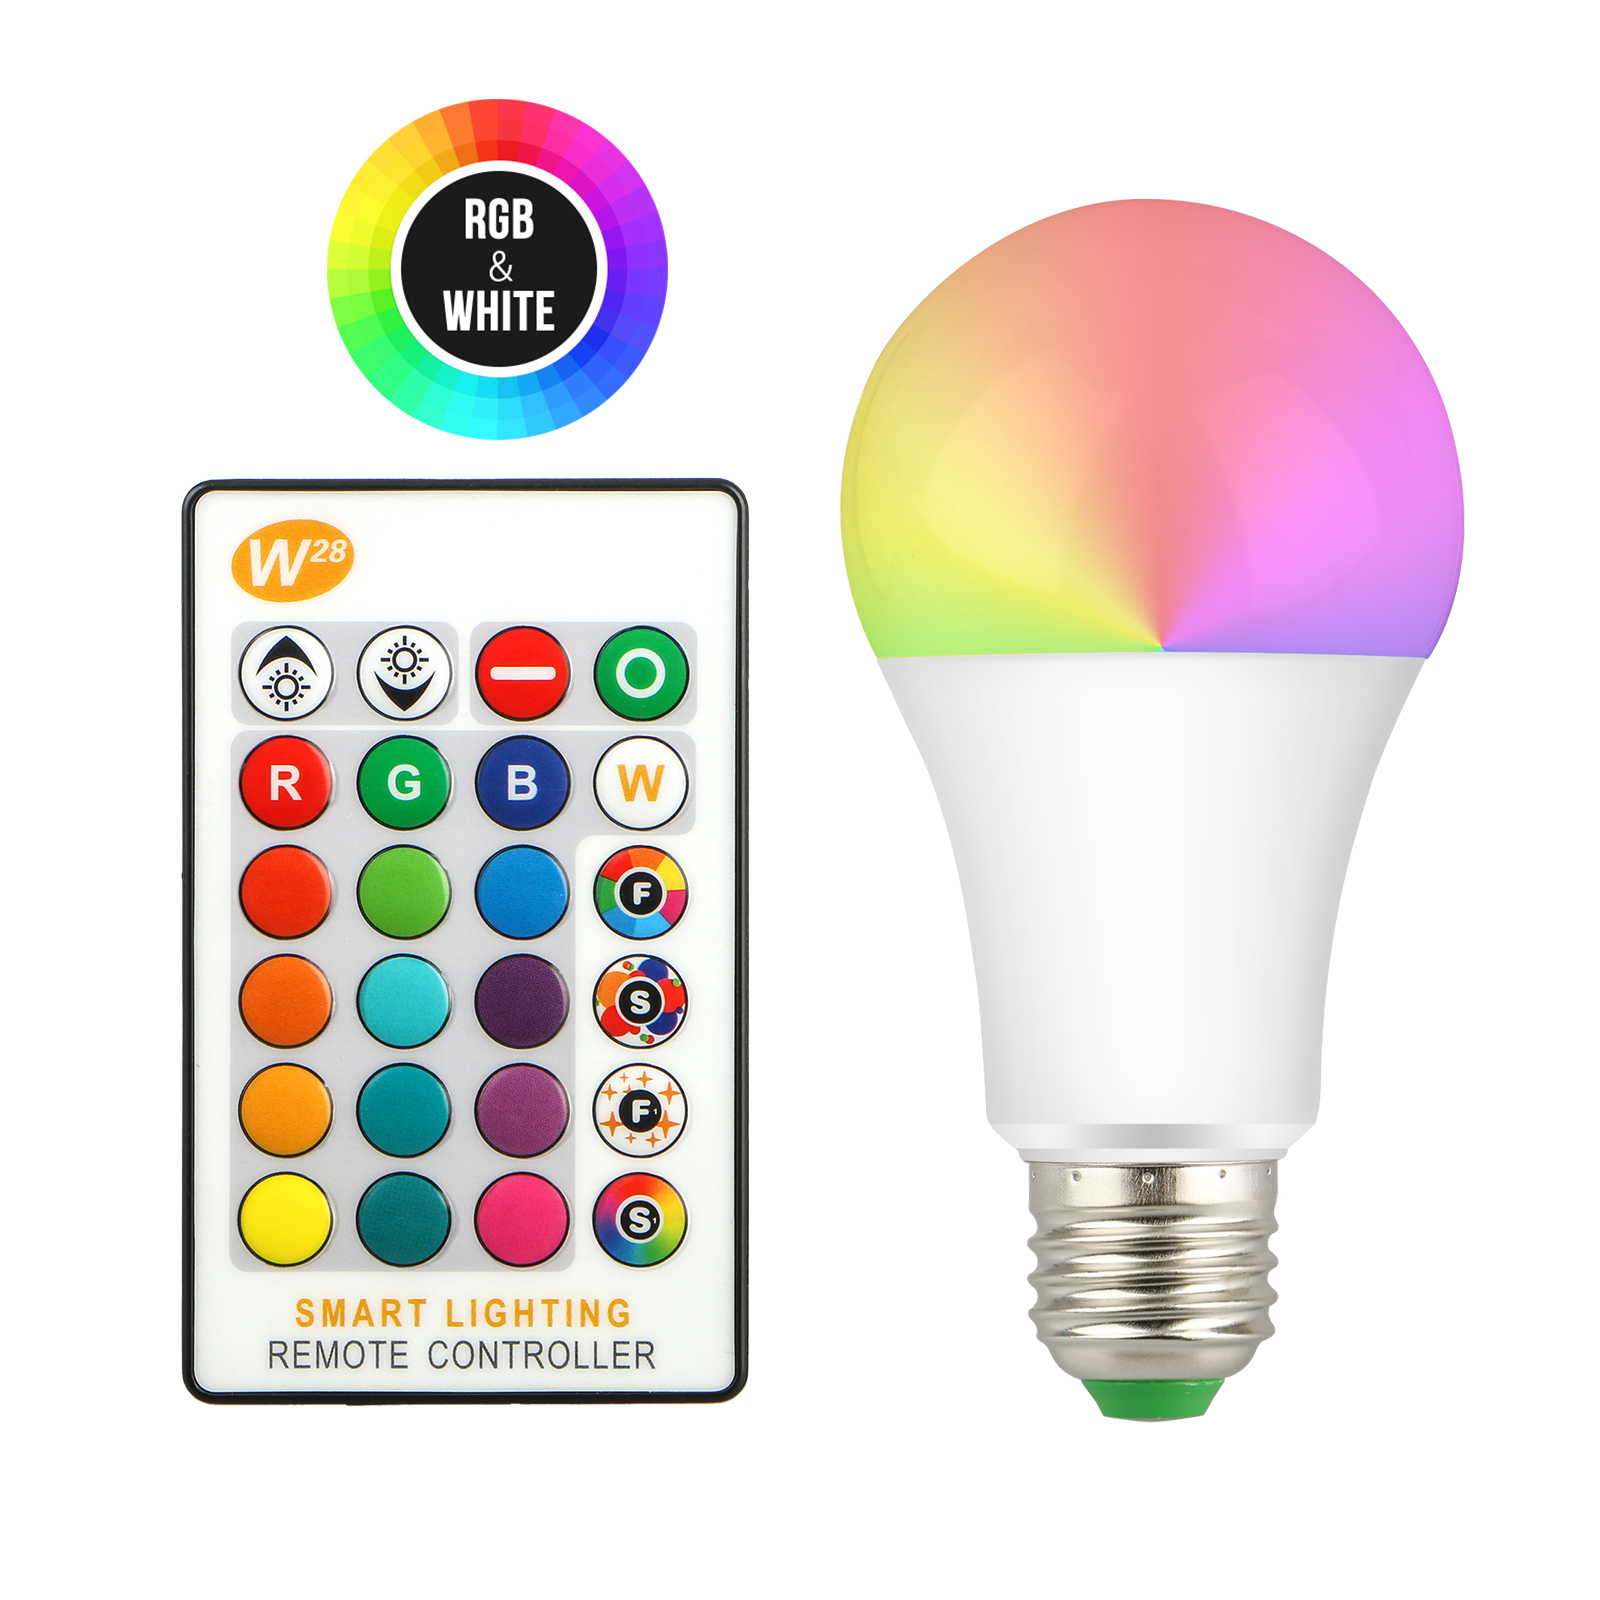 EEEKit 10W Smart LED Light Bulb, E27 16 RGBW Color Changing Lamp with Remote Contro, RGB Atmosphere Lighting and 65W Equivalent White Daily Lighting